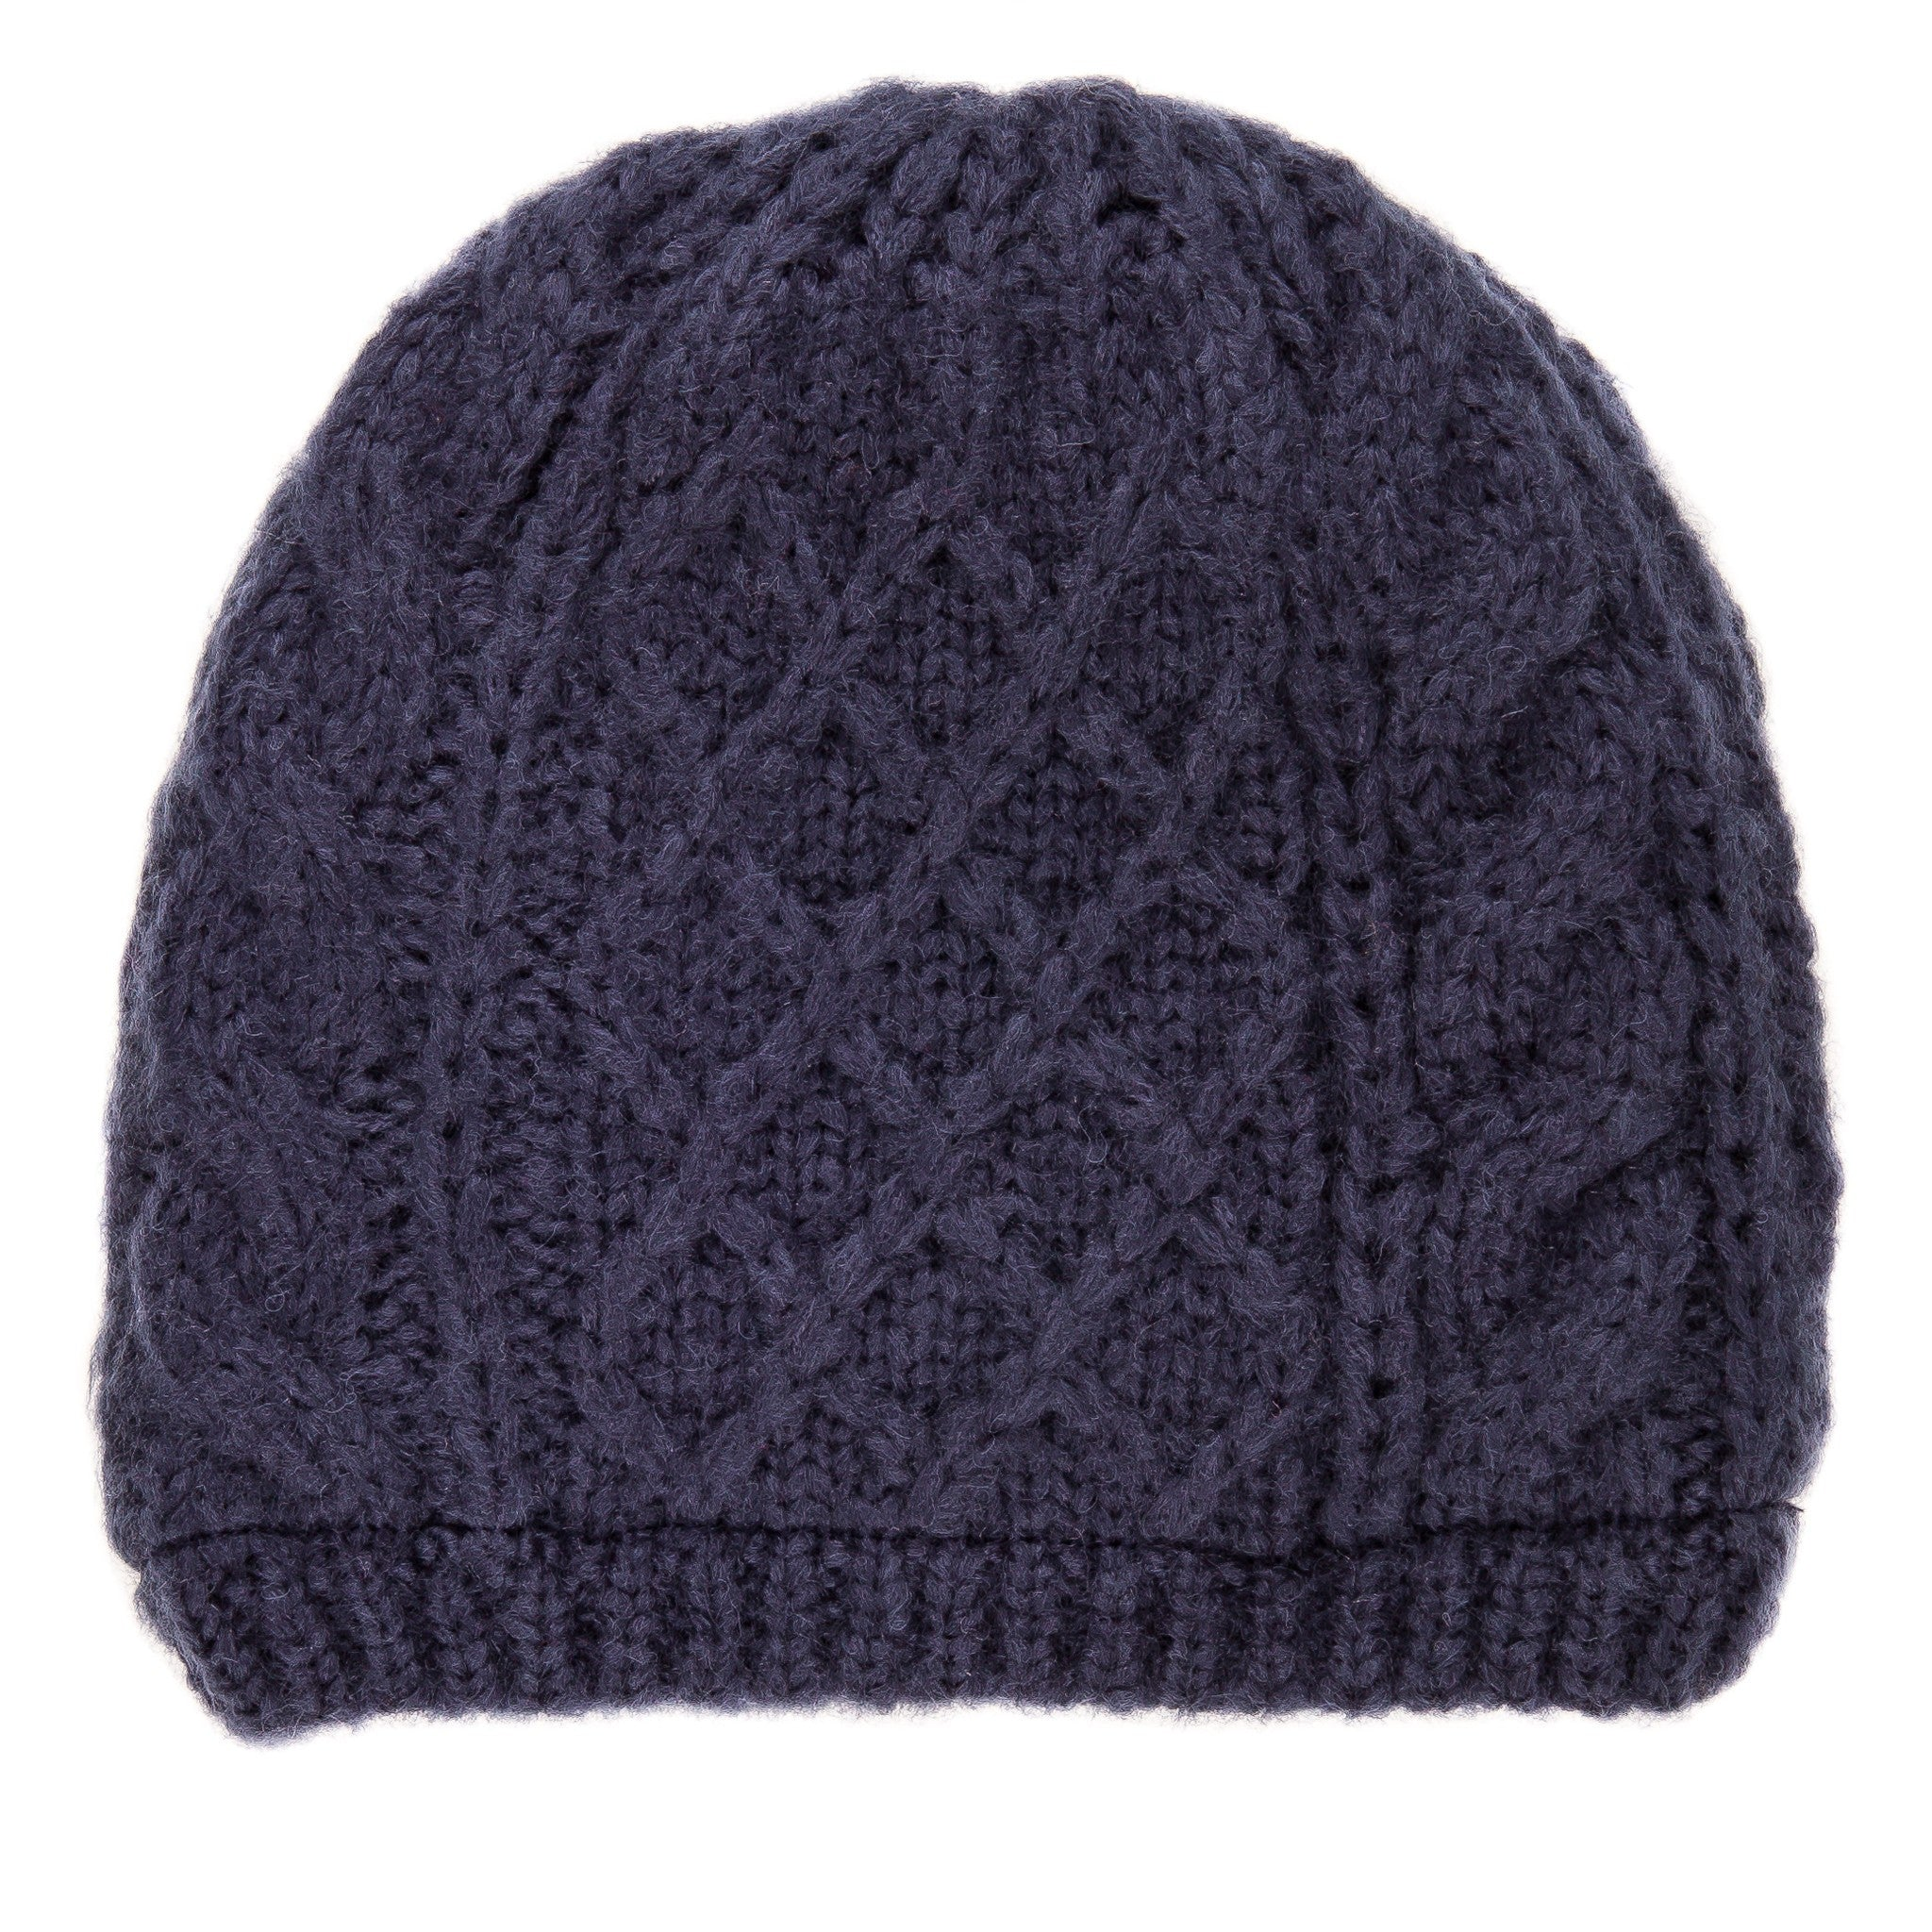 Men's Super-Soft Cable Knit Avalanche Winter Hat